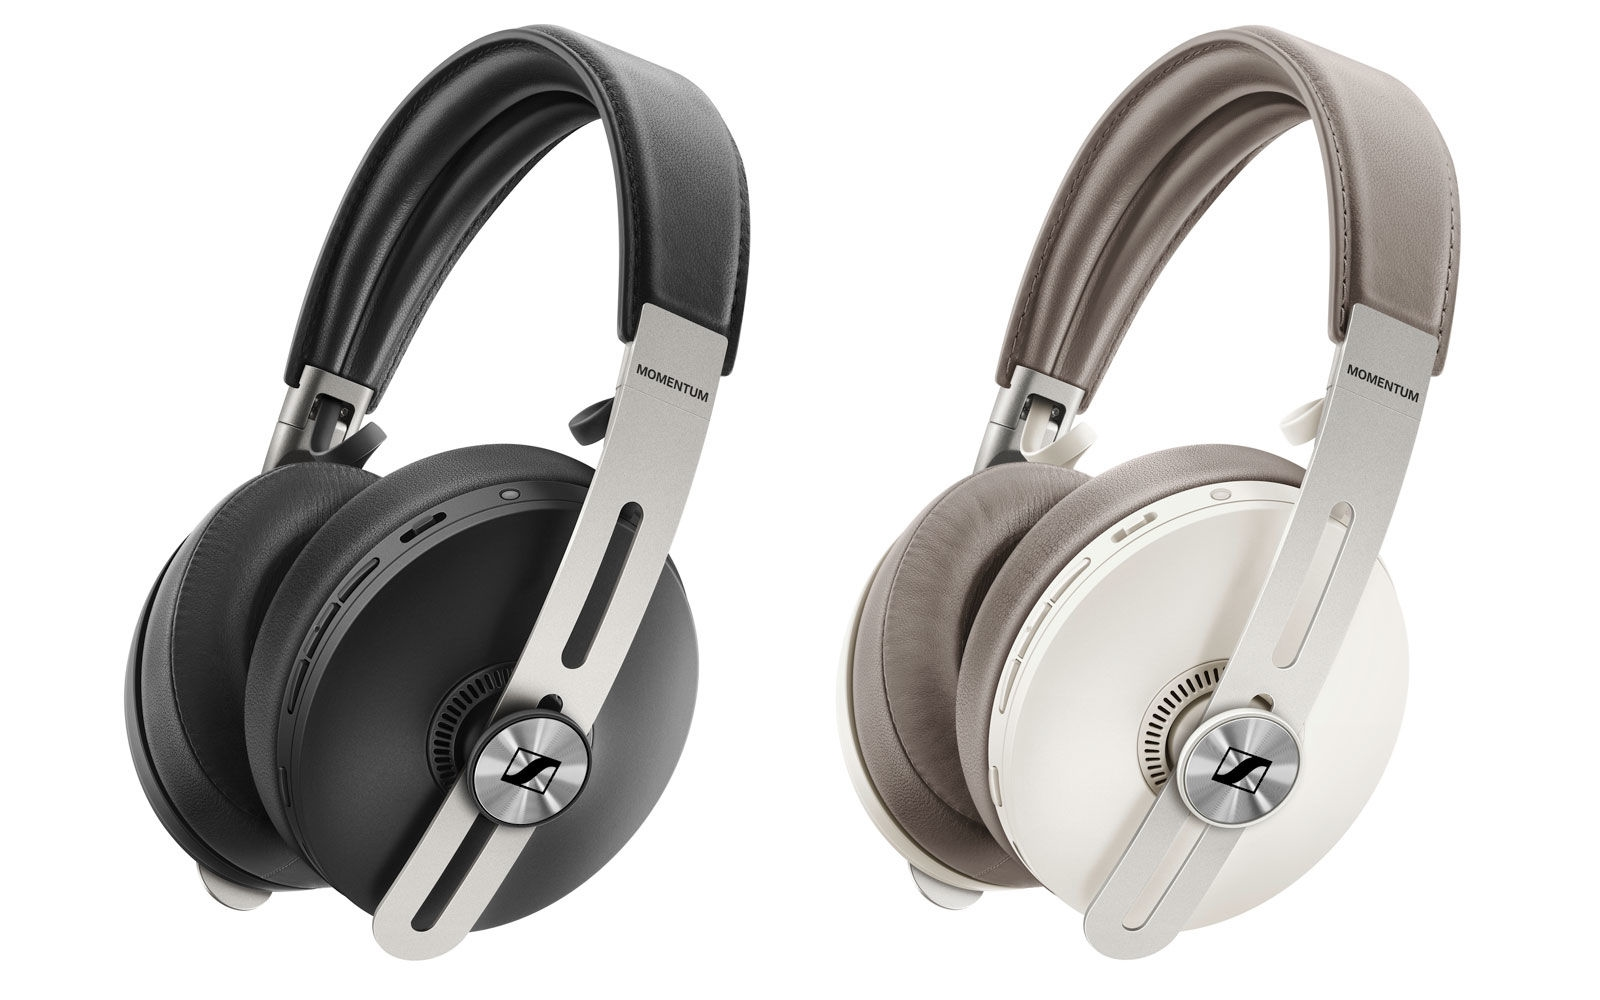 Sennheiser's new Momentum headphones are improved, but still pricey | DeviceDaily.com